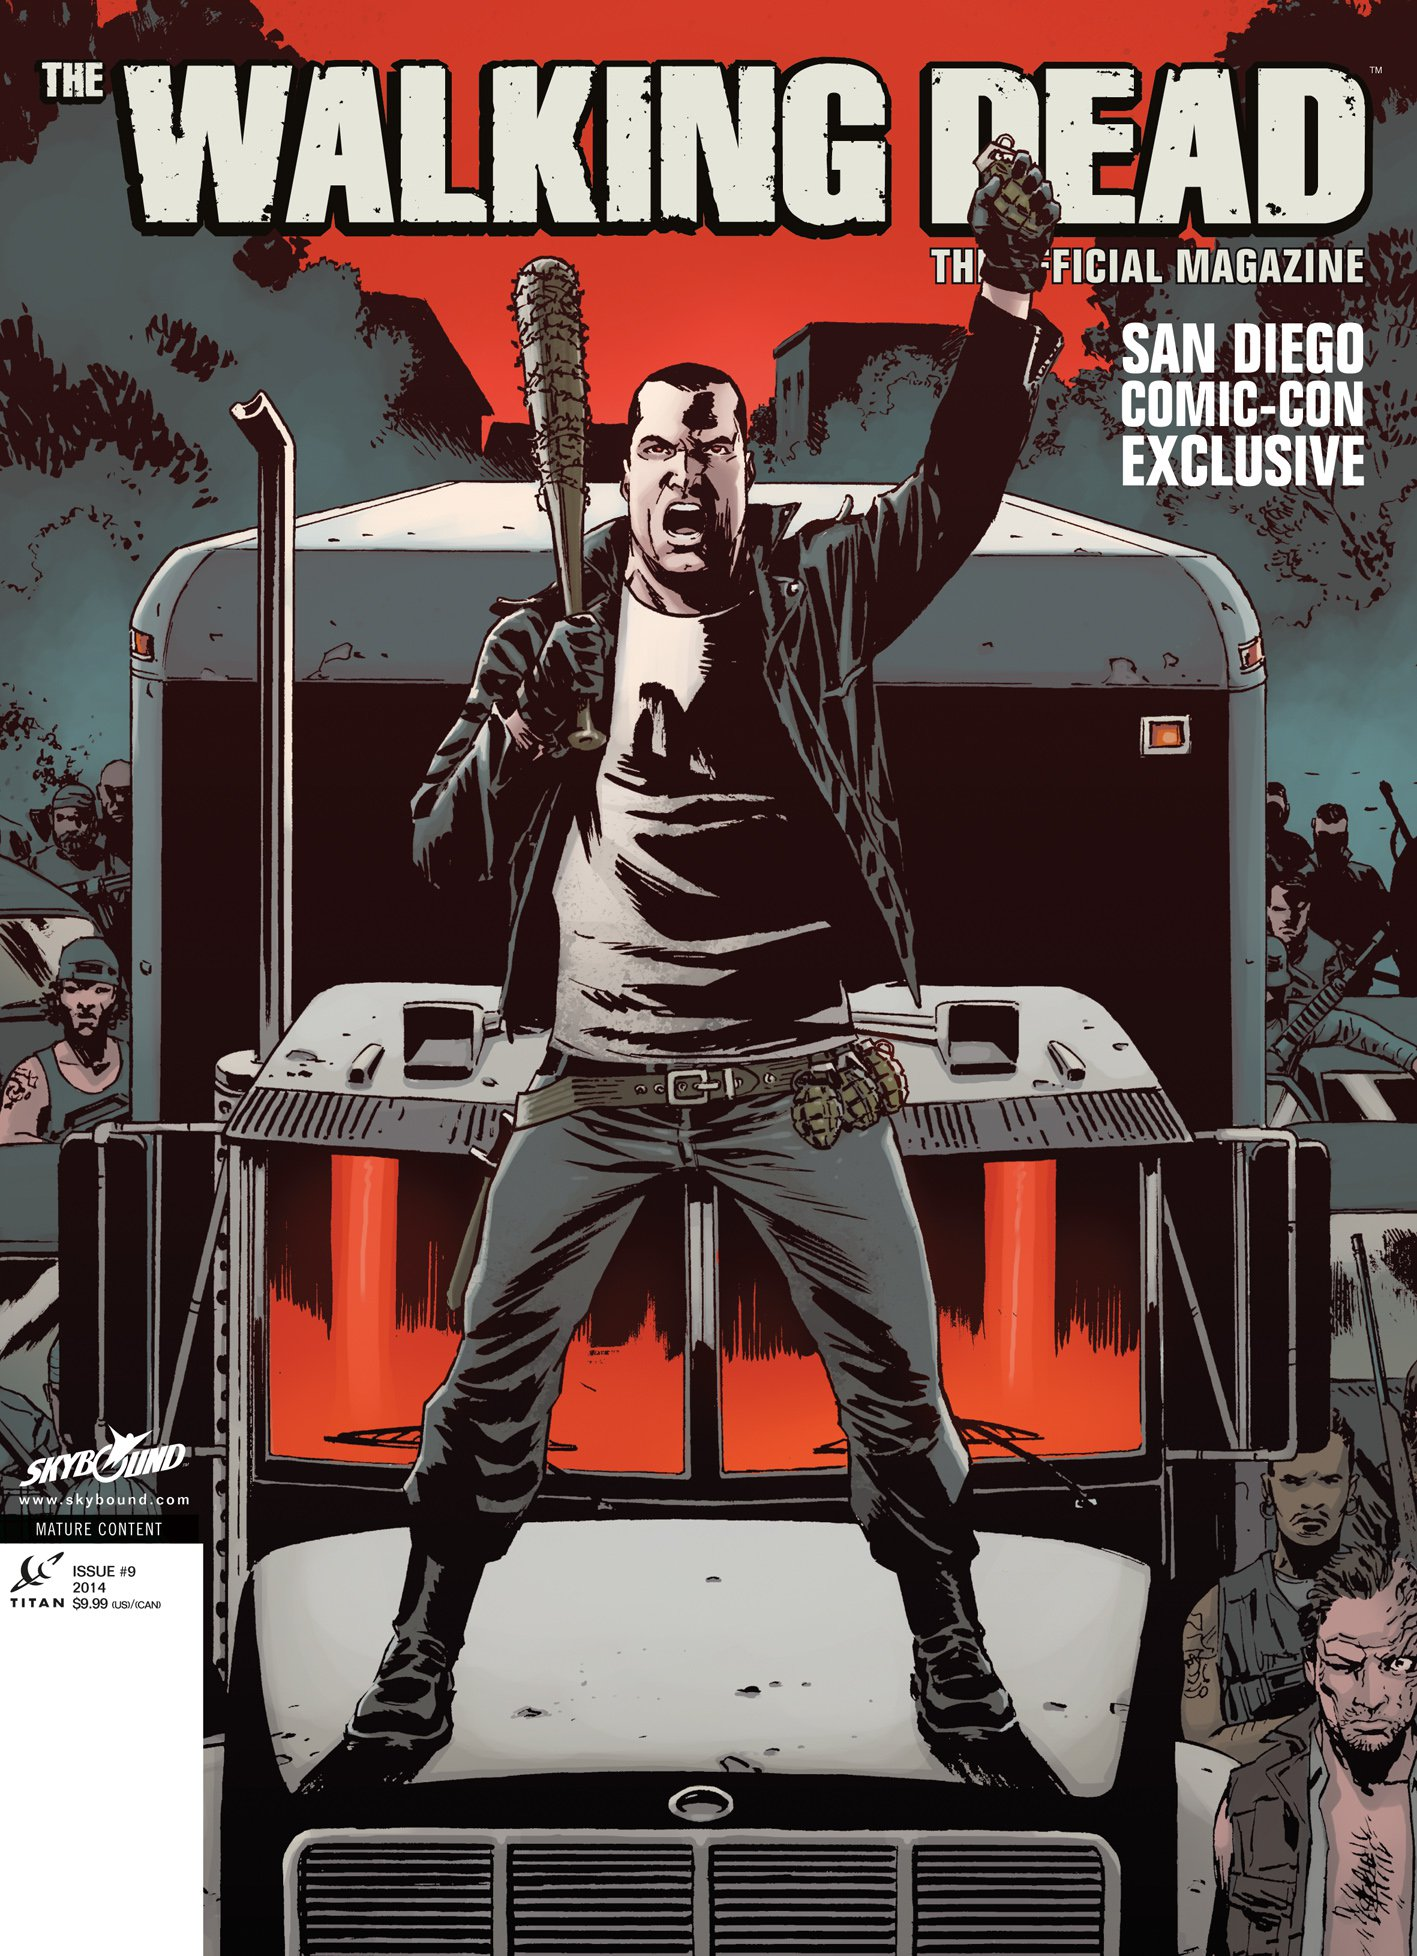 walking-dead-magazine-9-san-diego-exclusive-cover